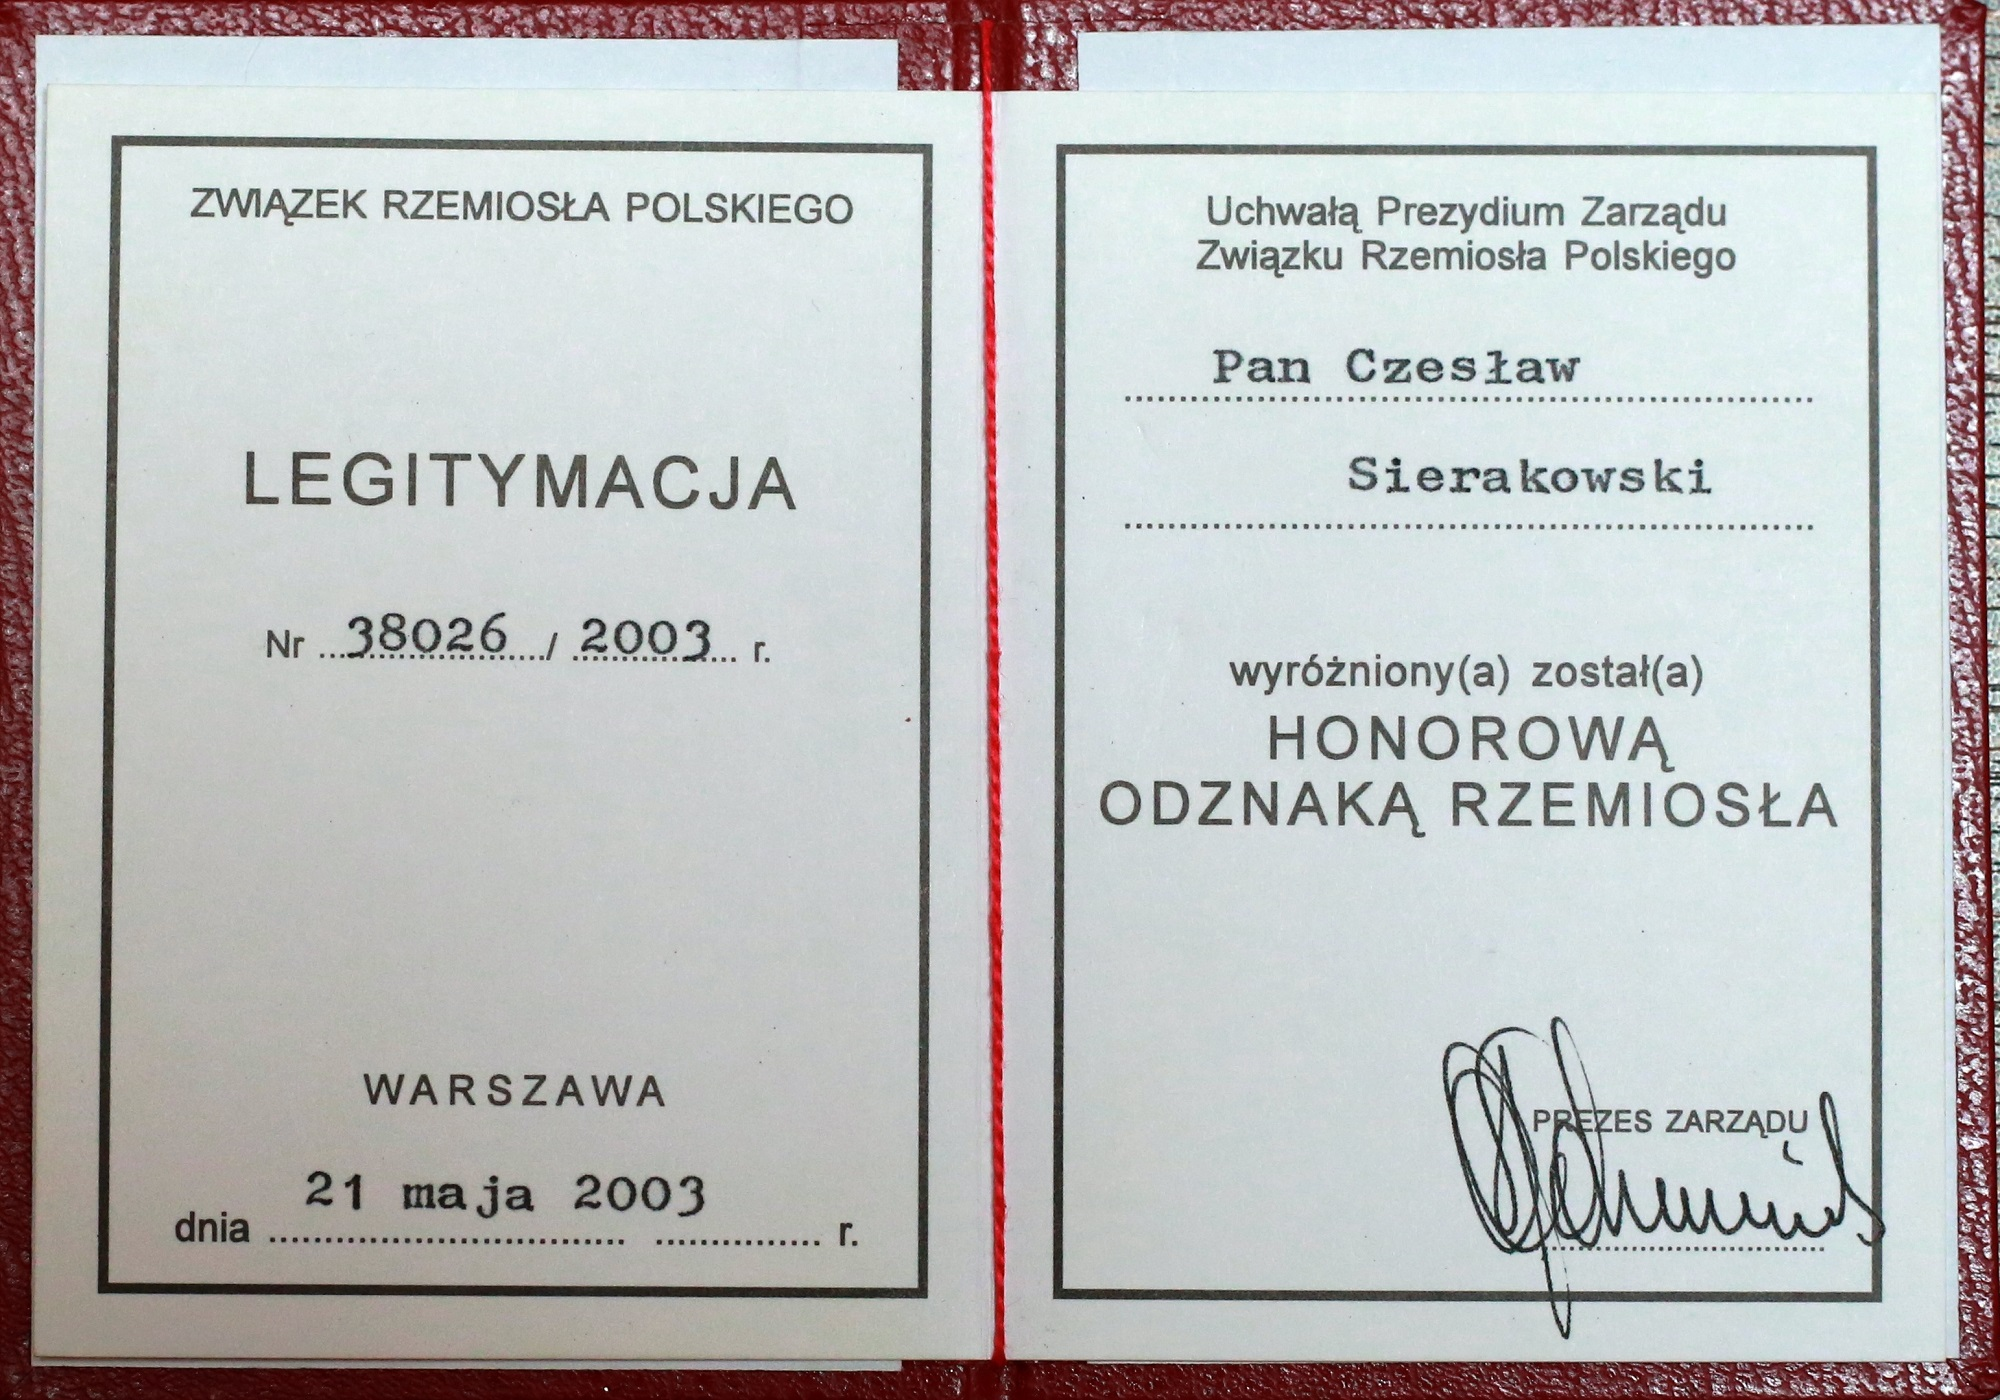 A certificate added to Honor Shield given to Mr Czesław Sierakowski by Chamber of Crafts for the appreciation of the development in 2003